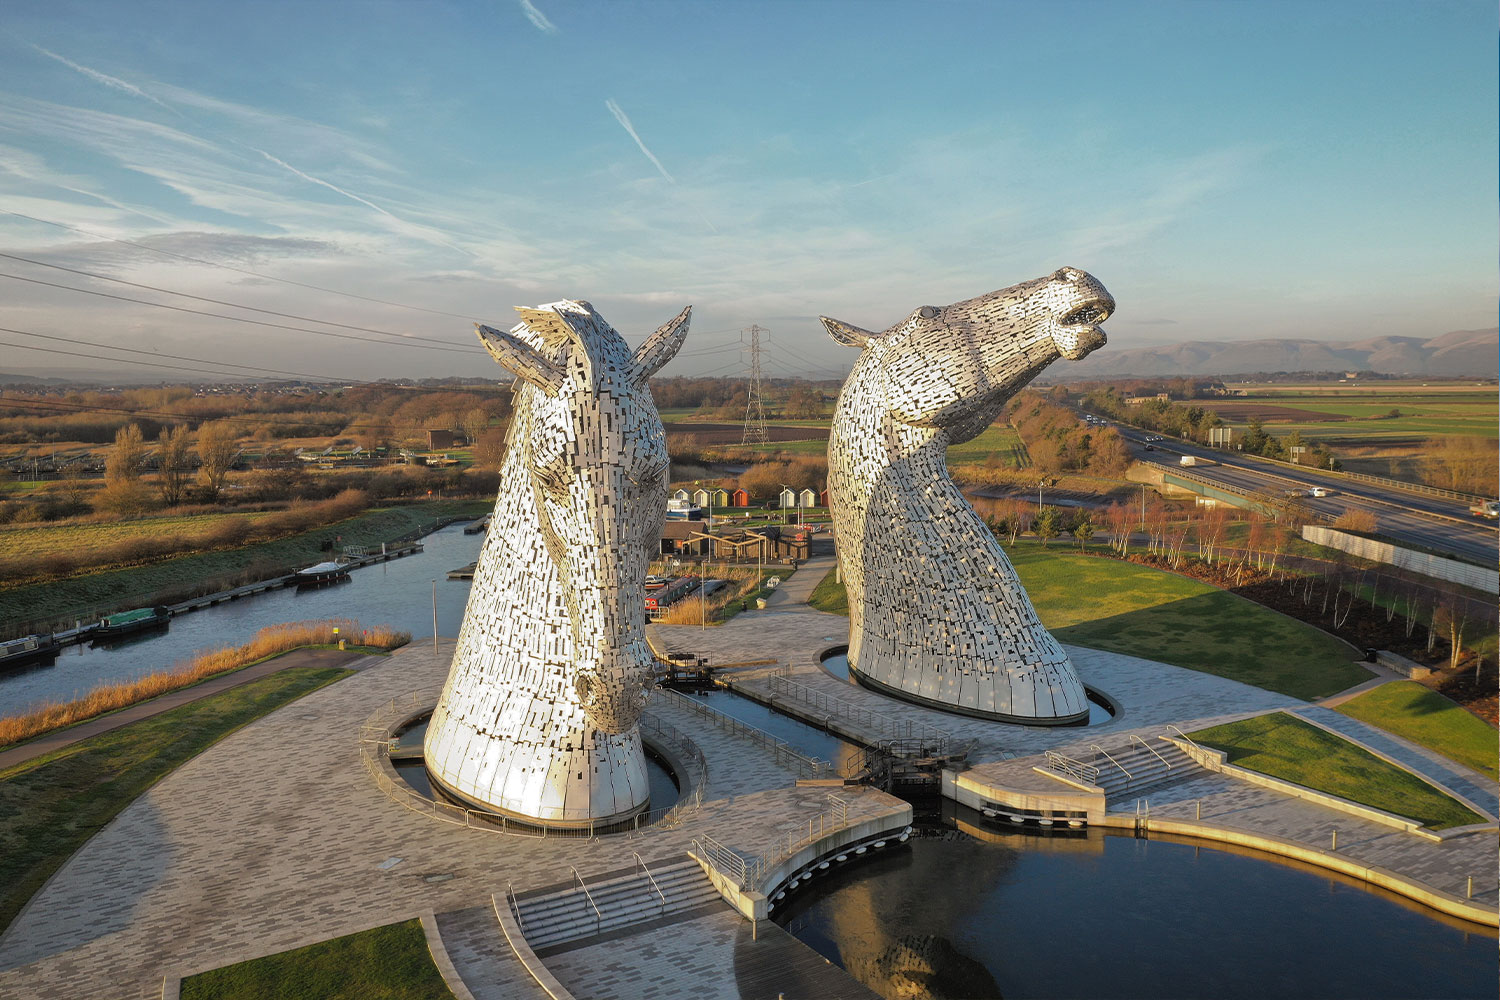 The Kelpies by the Forth and Clyde Canal, Scotland